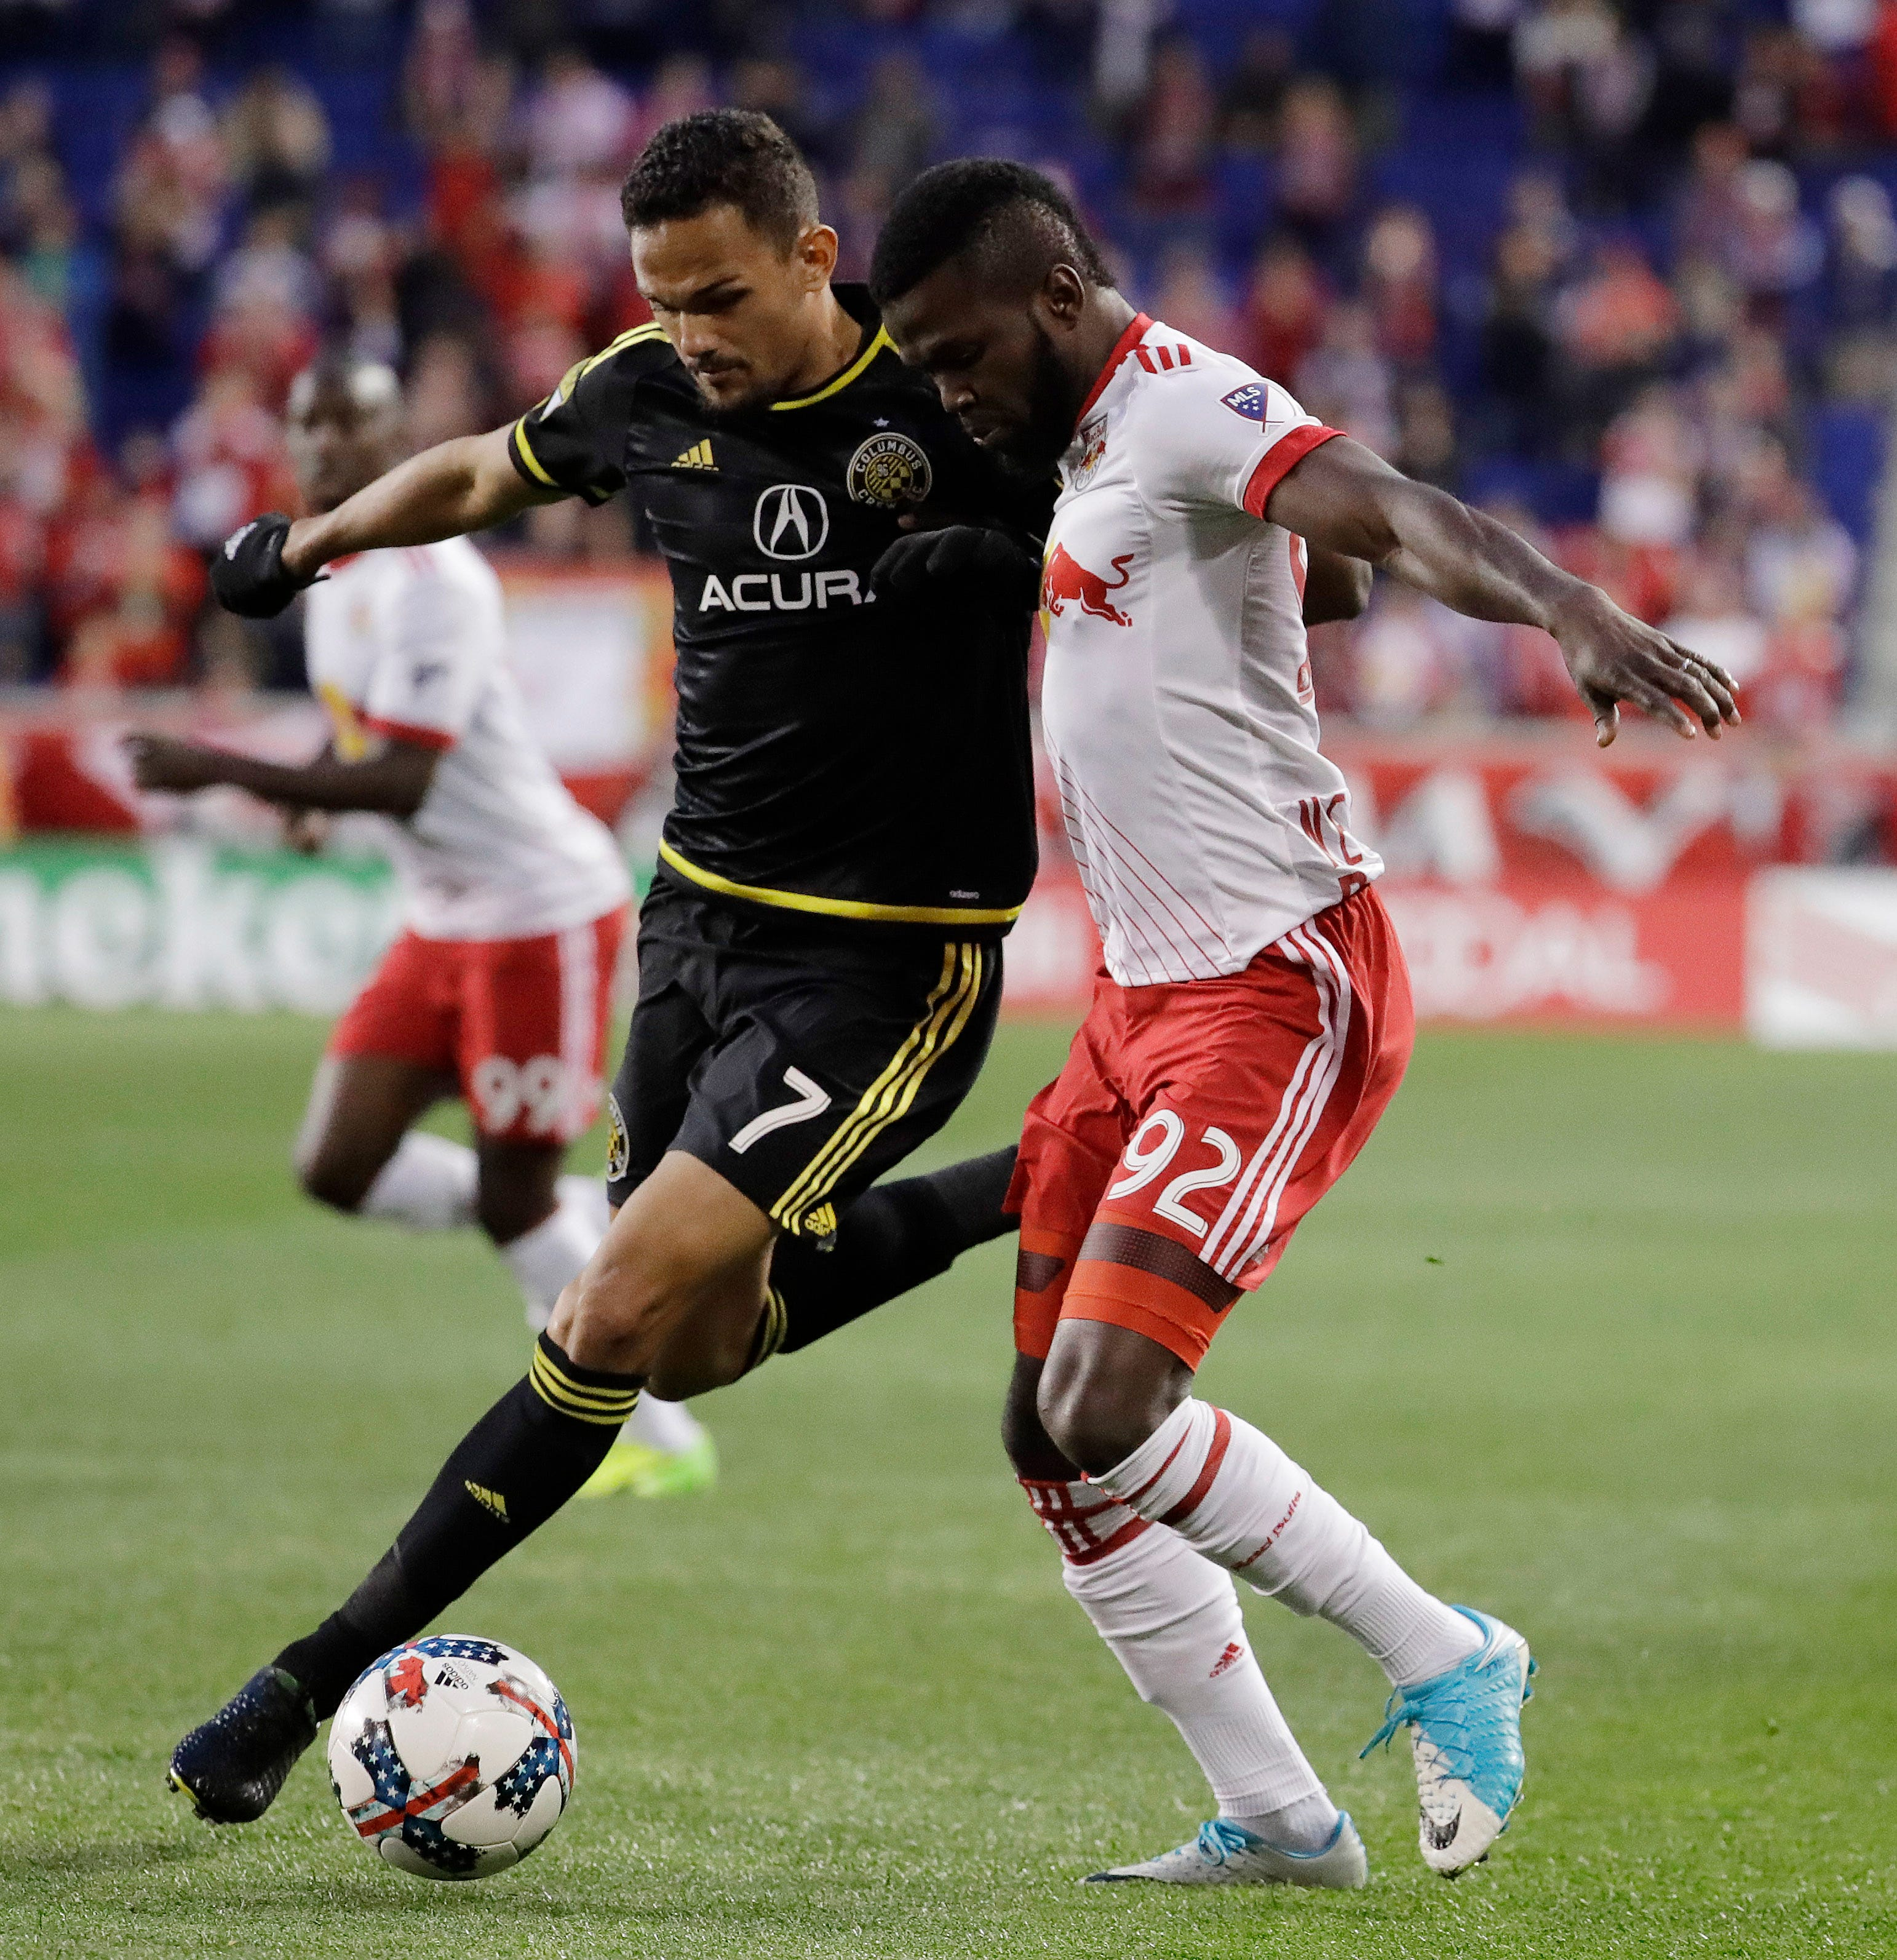 Robles has 4th shutout as Red Bulls top Crew 2-0